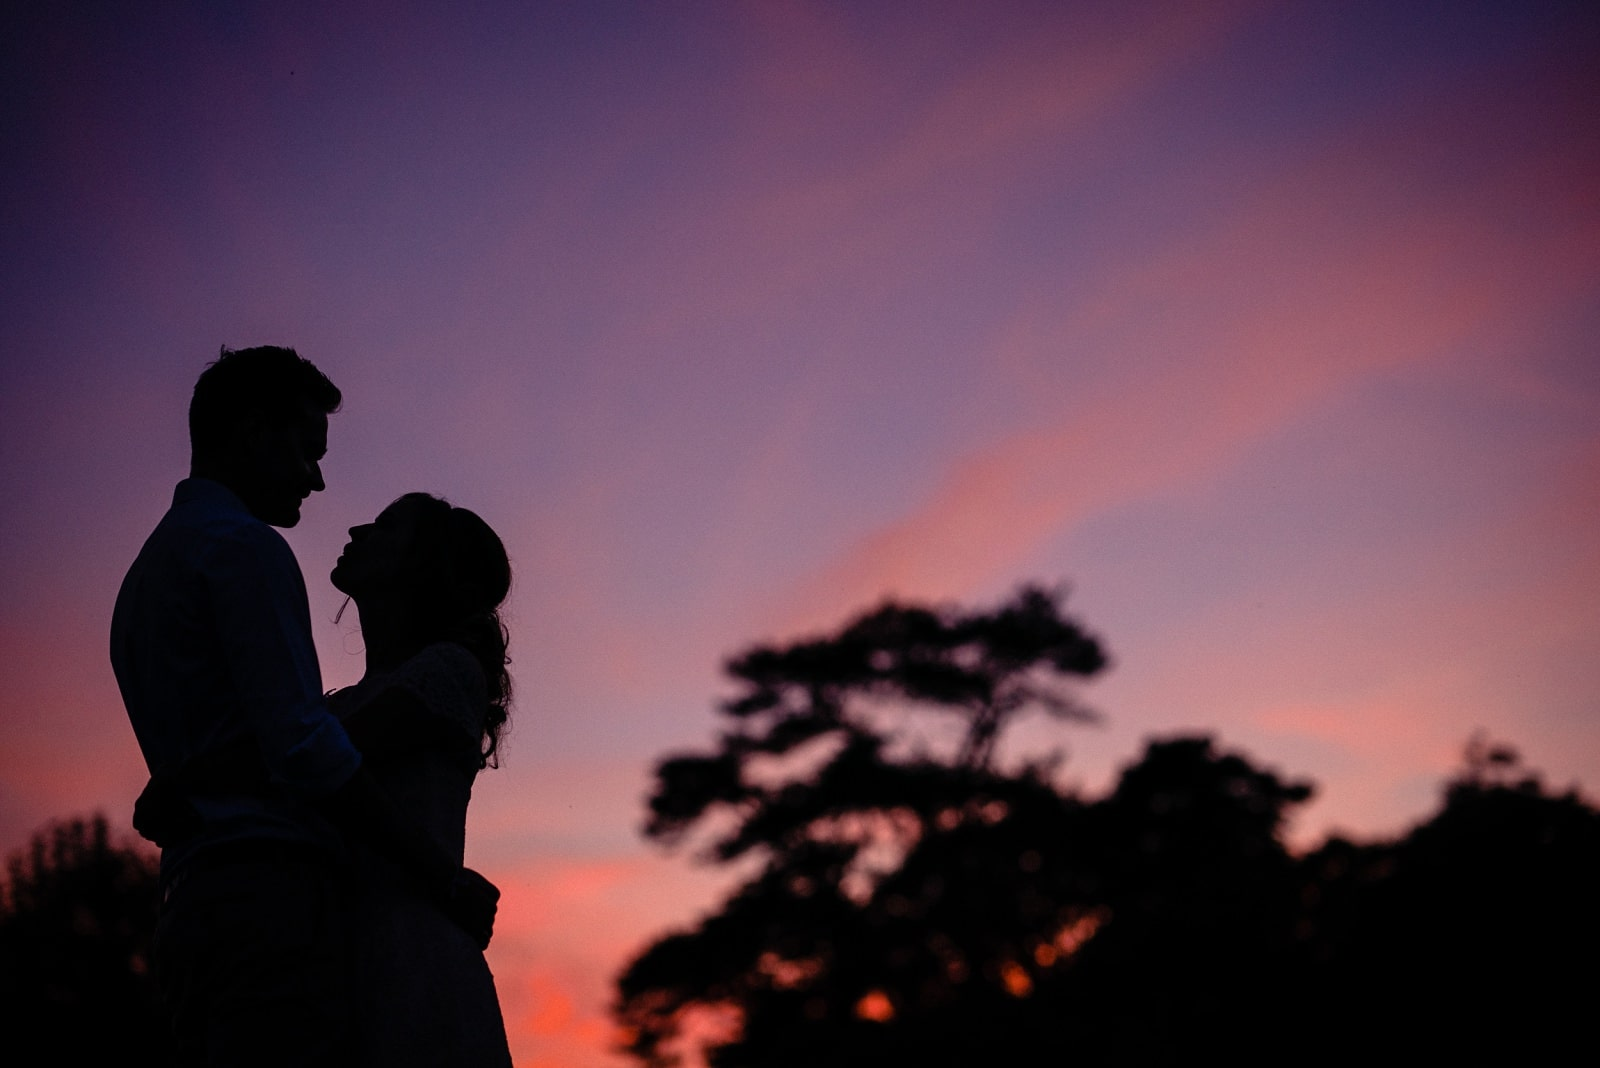 The bride and groom silhouetted against a purple sky at Nancarrow Farm